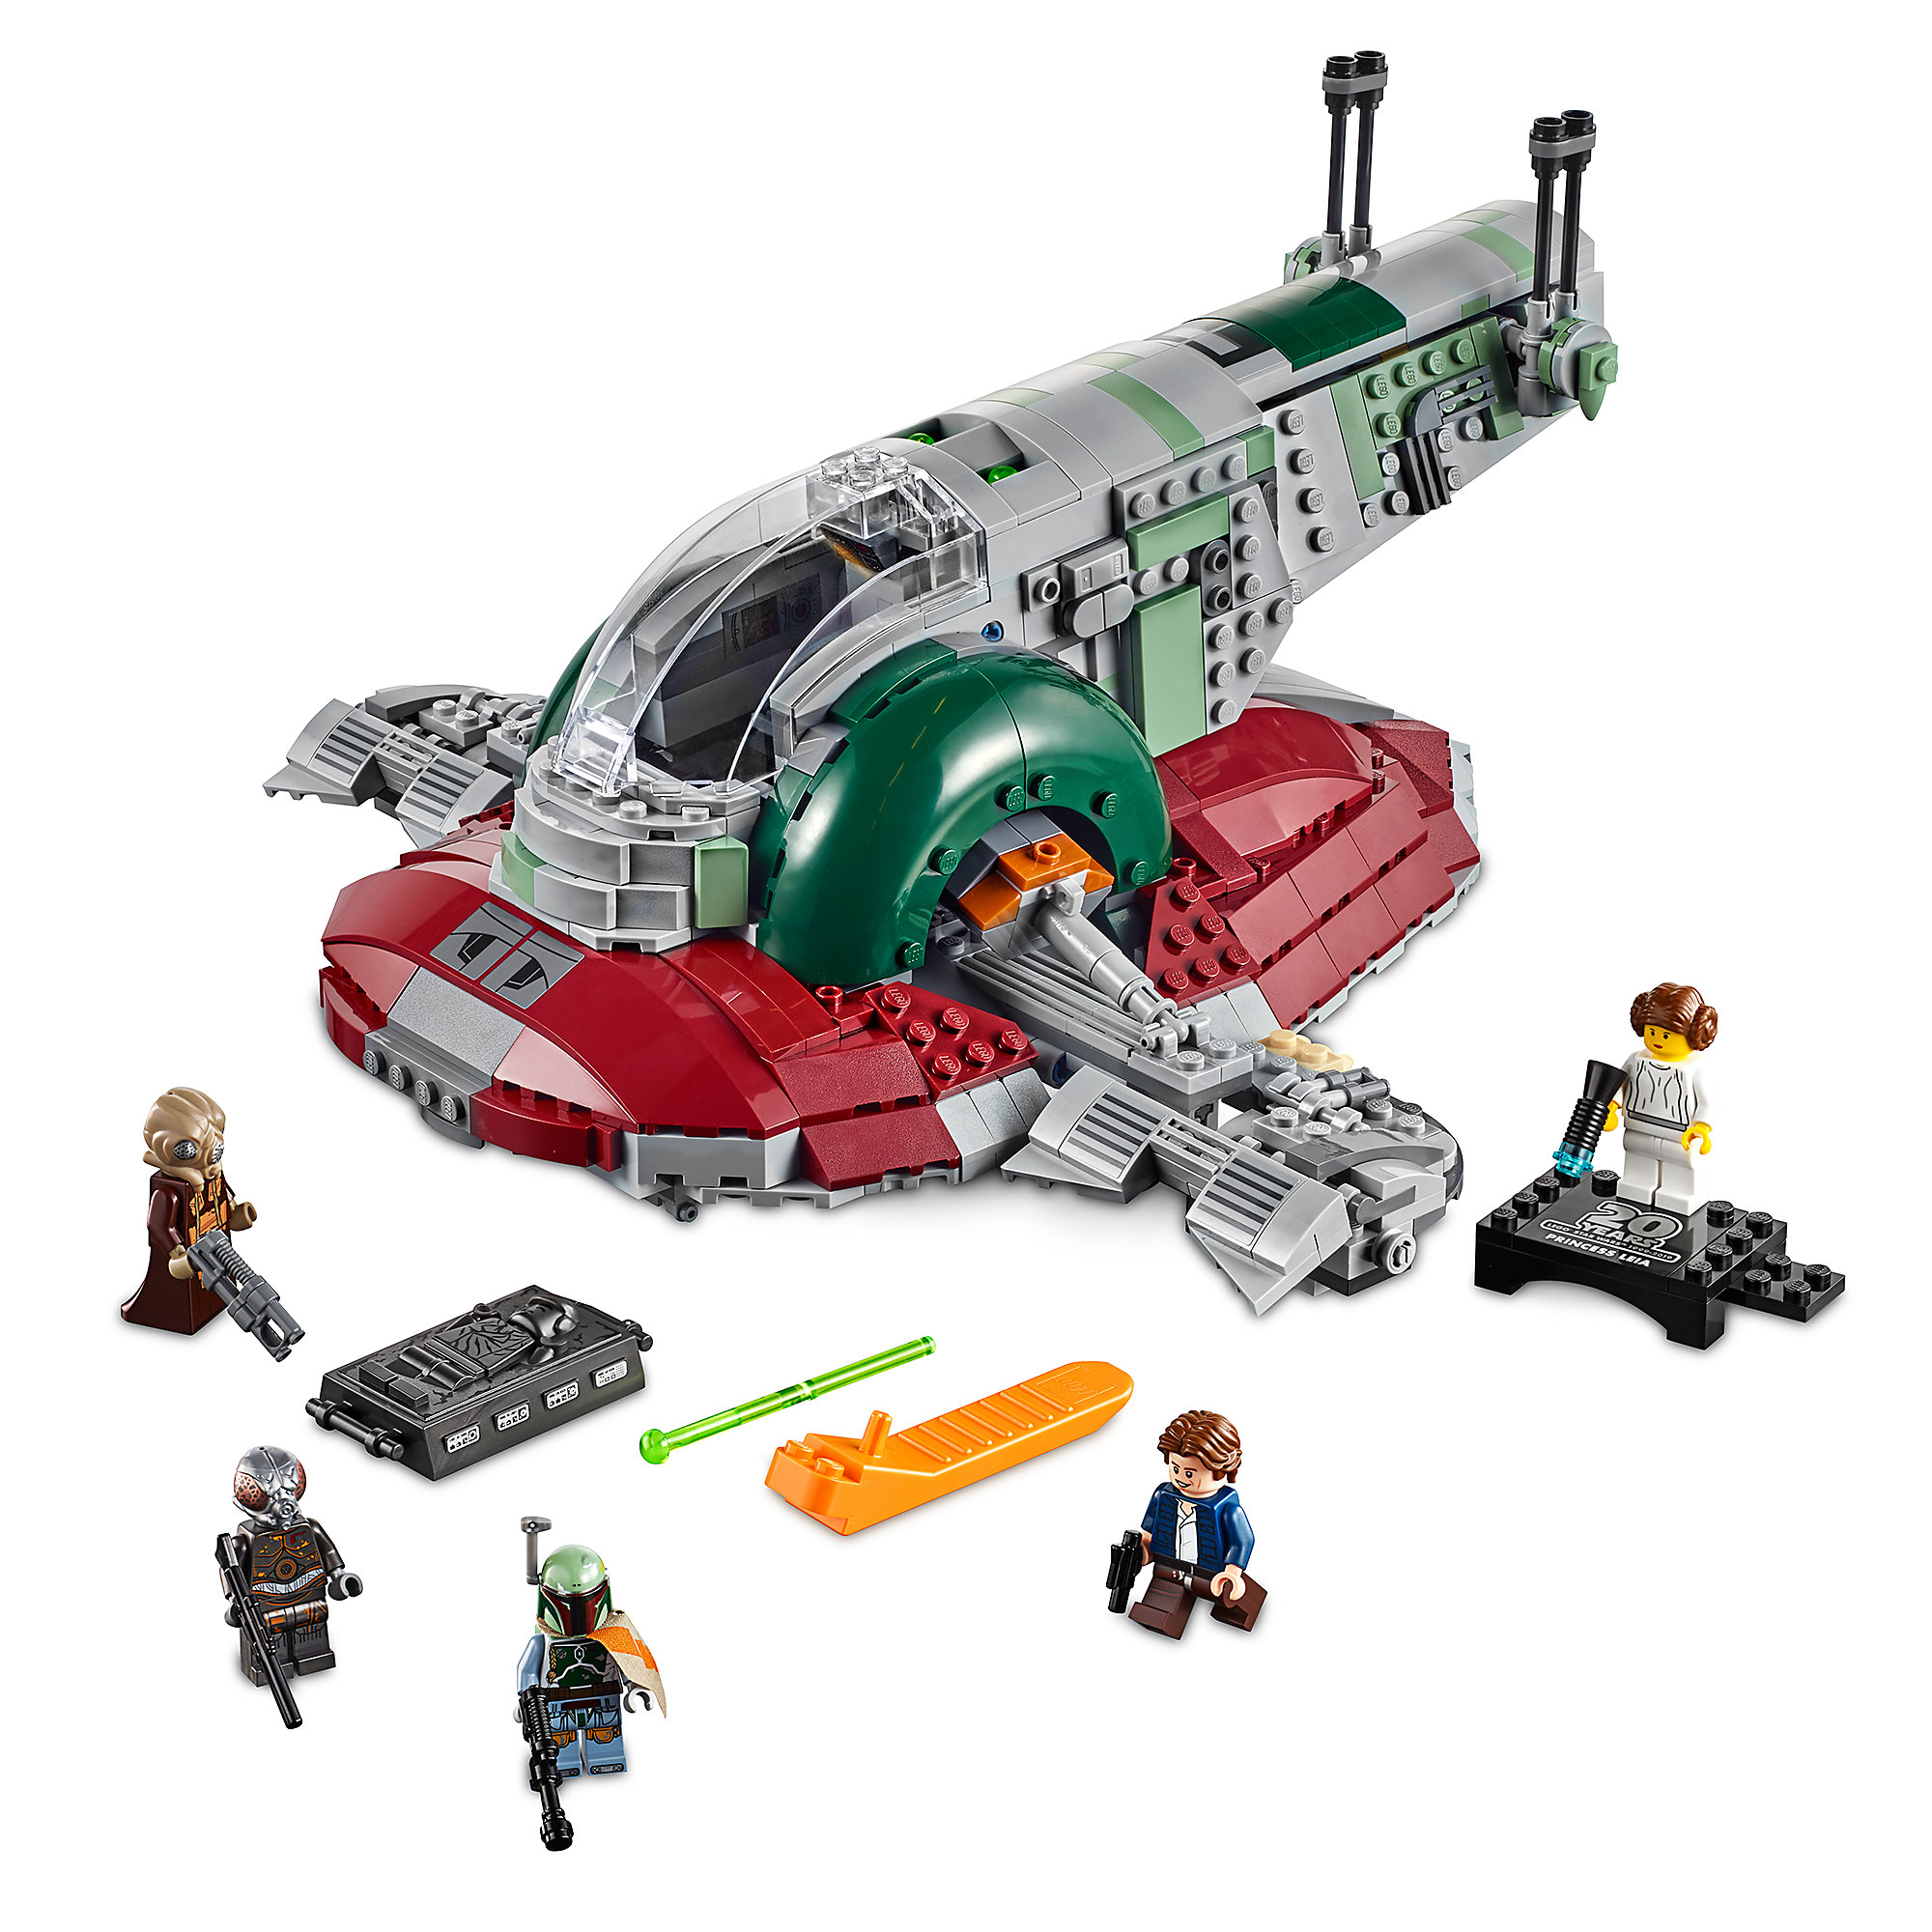 Slave I - 20th Anniversary Edition Play Set by LEGO - Star Wars